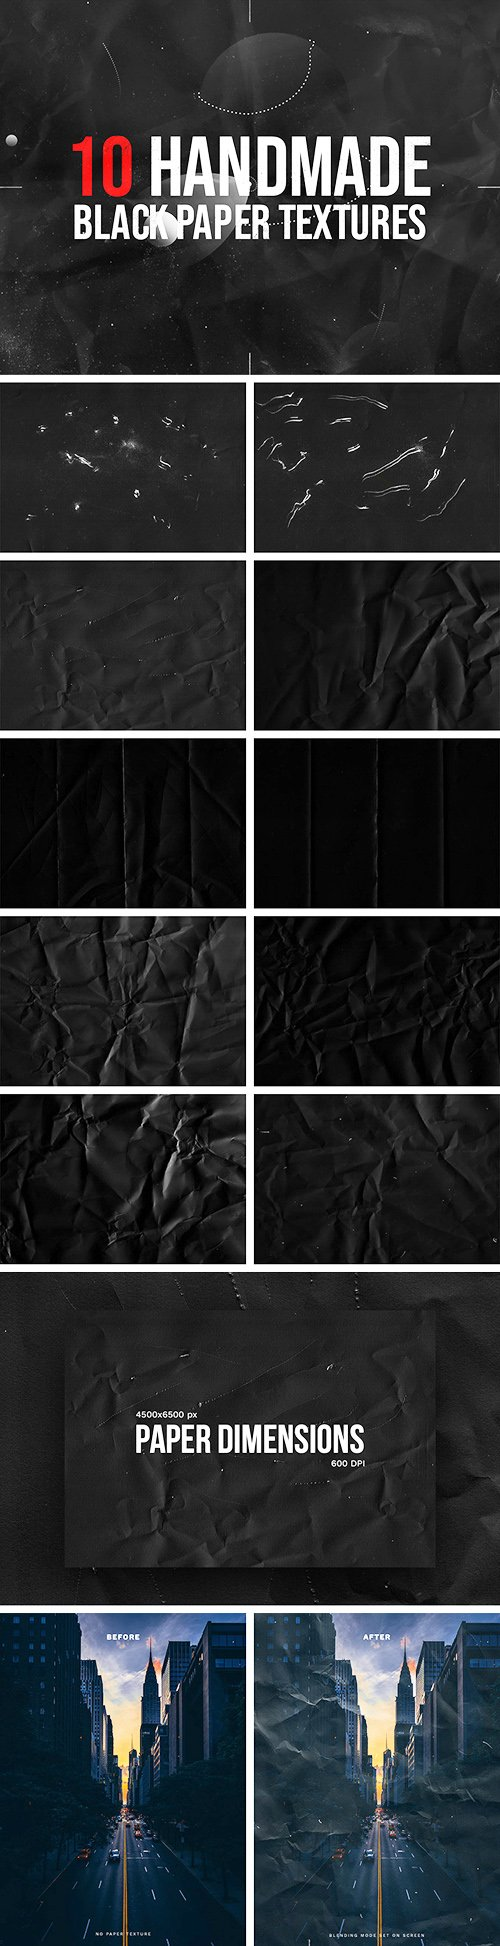 10 Handmade Black Paper Textures for Photoshop